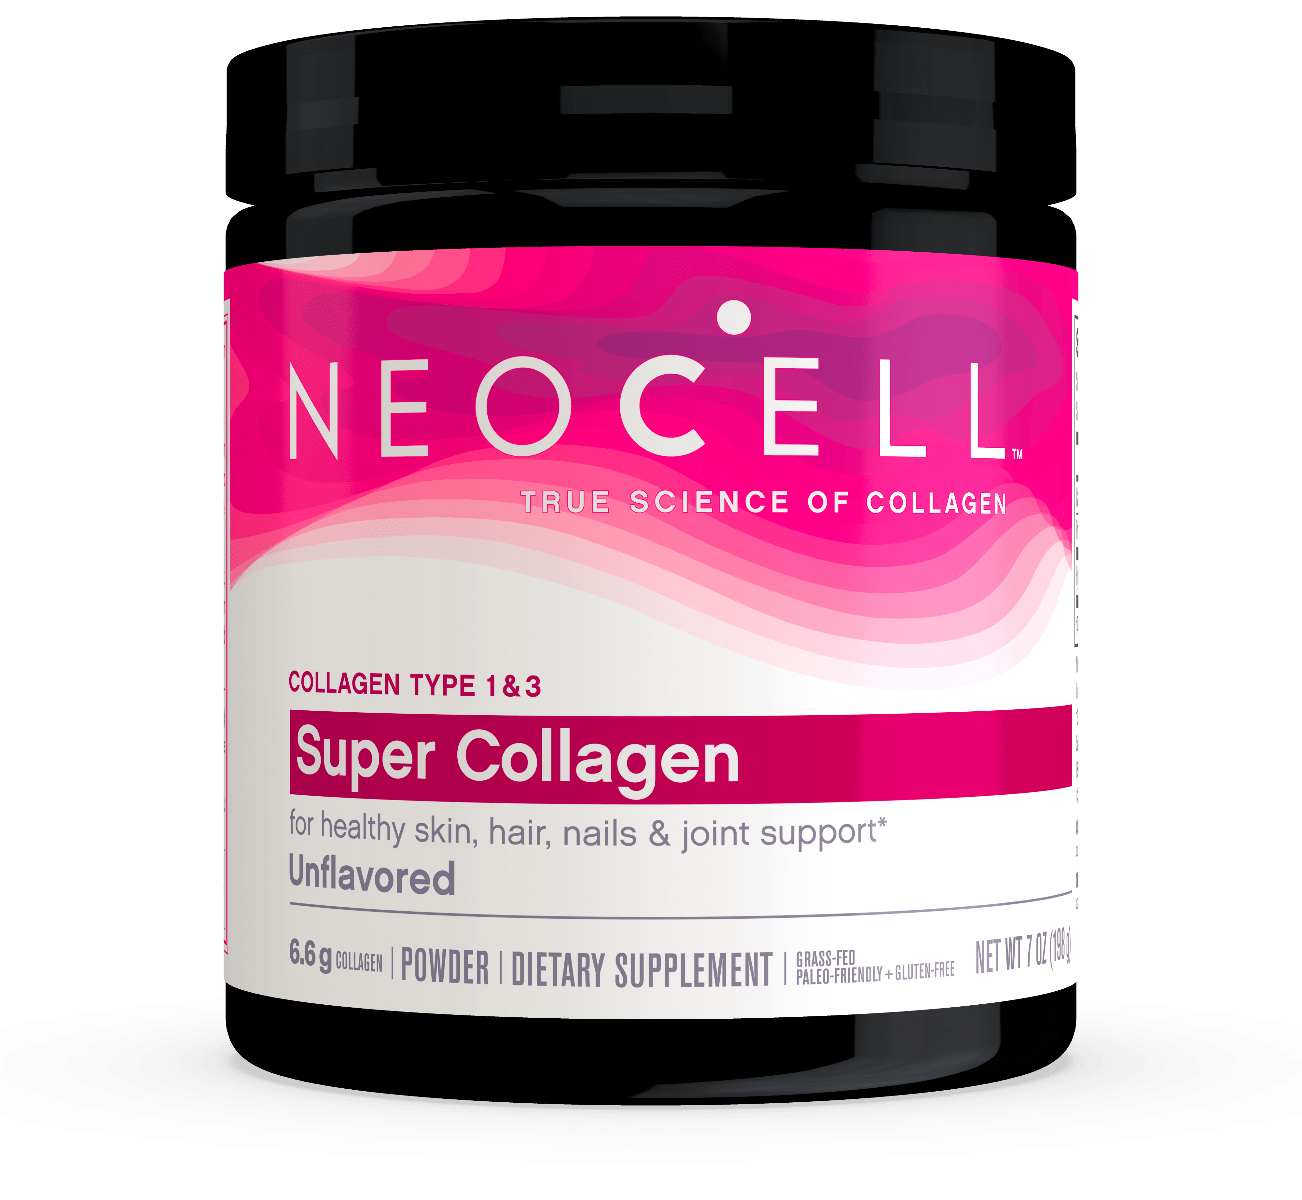 NeoCell Collagen Review – Does This Super Collagen Actually Work?